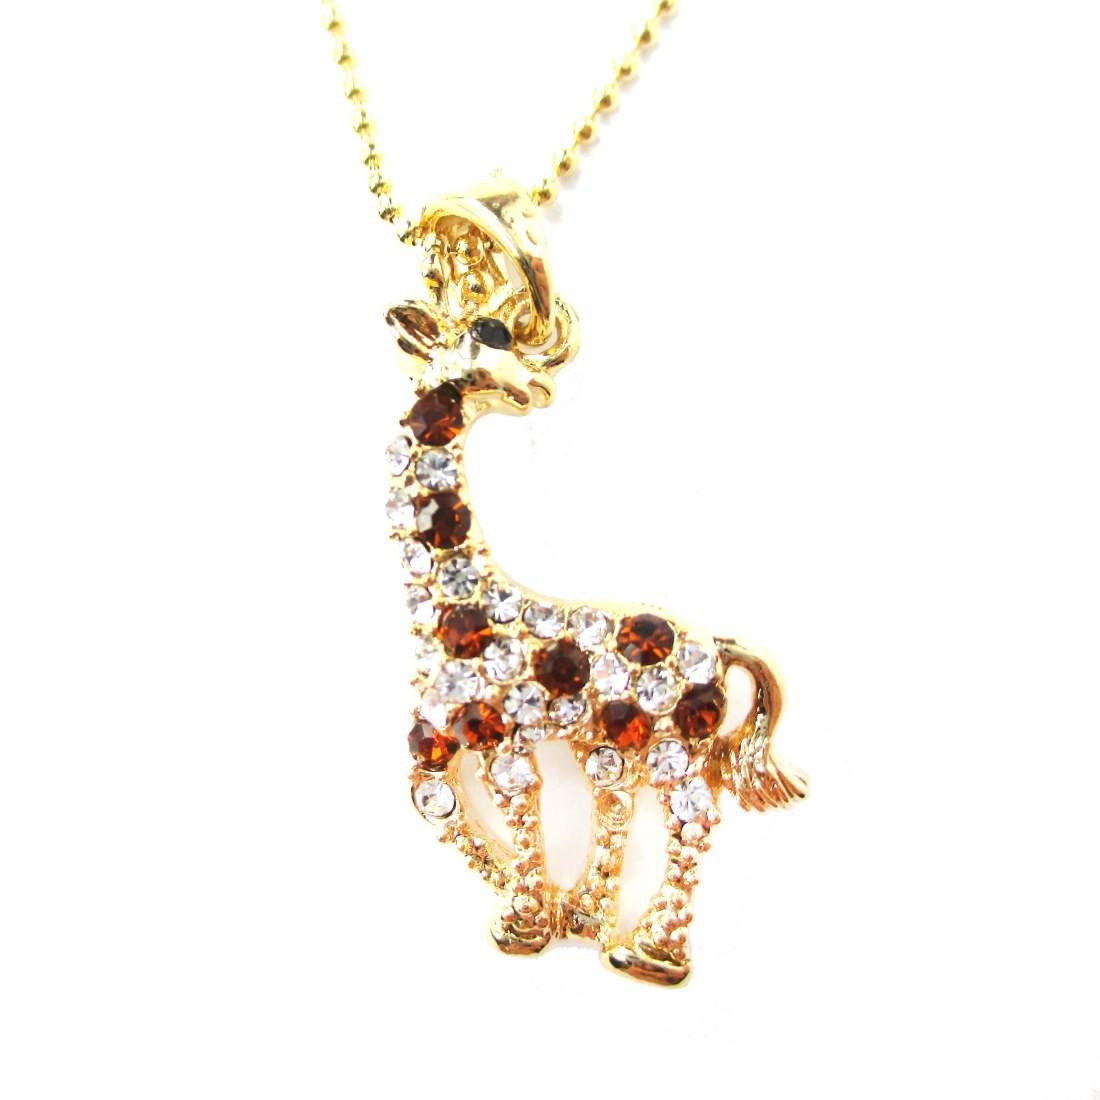 giraffe animal shaped pendant necklace in gold with